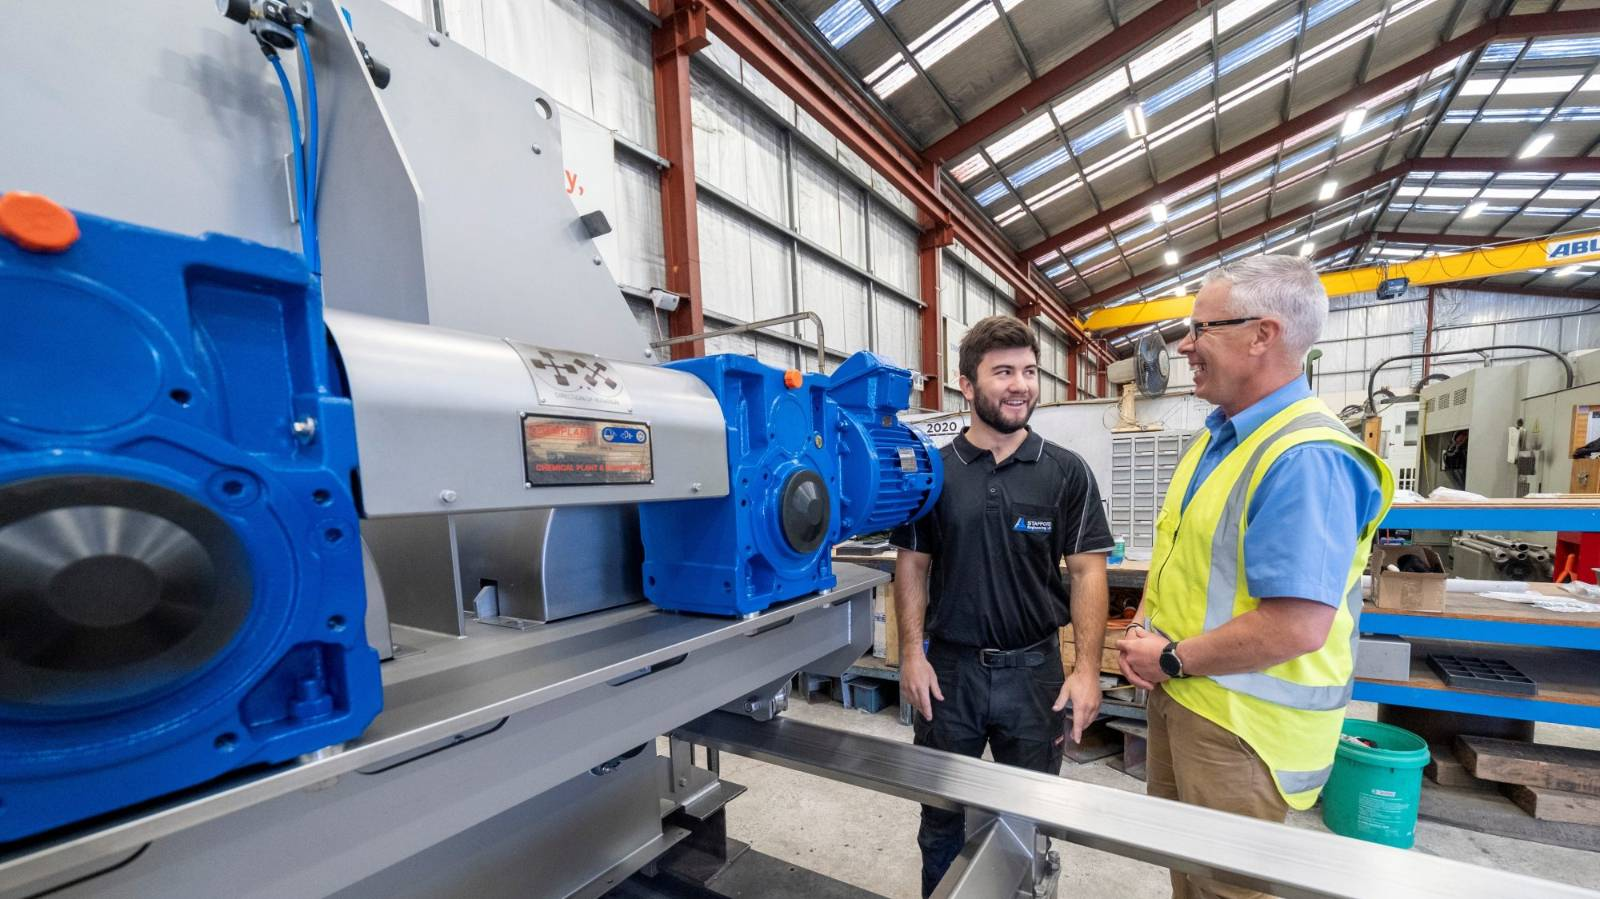 Engineering firm urges companies to take on apprentices